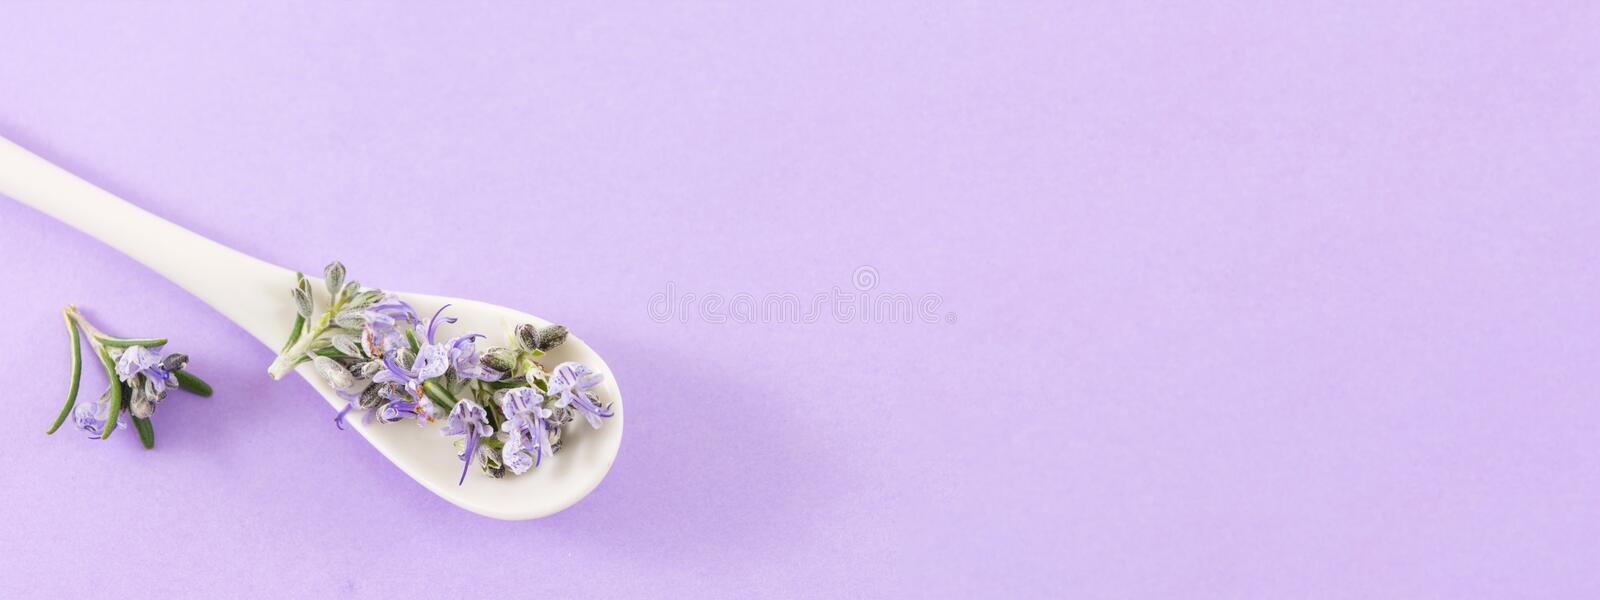 Rosemary flowers in a spoon stock image